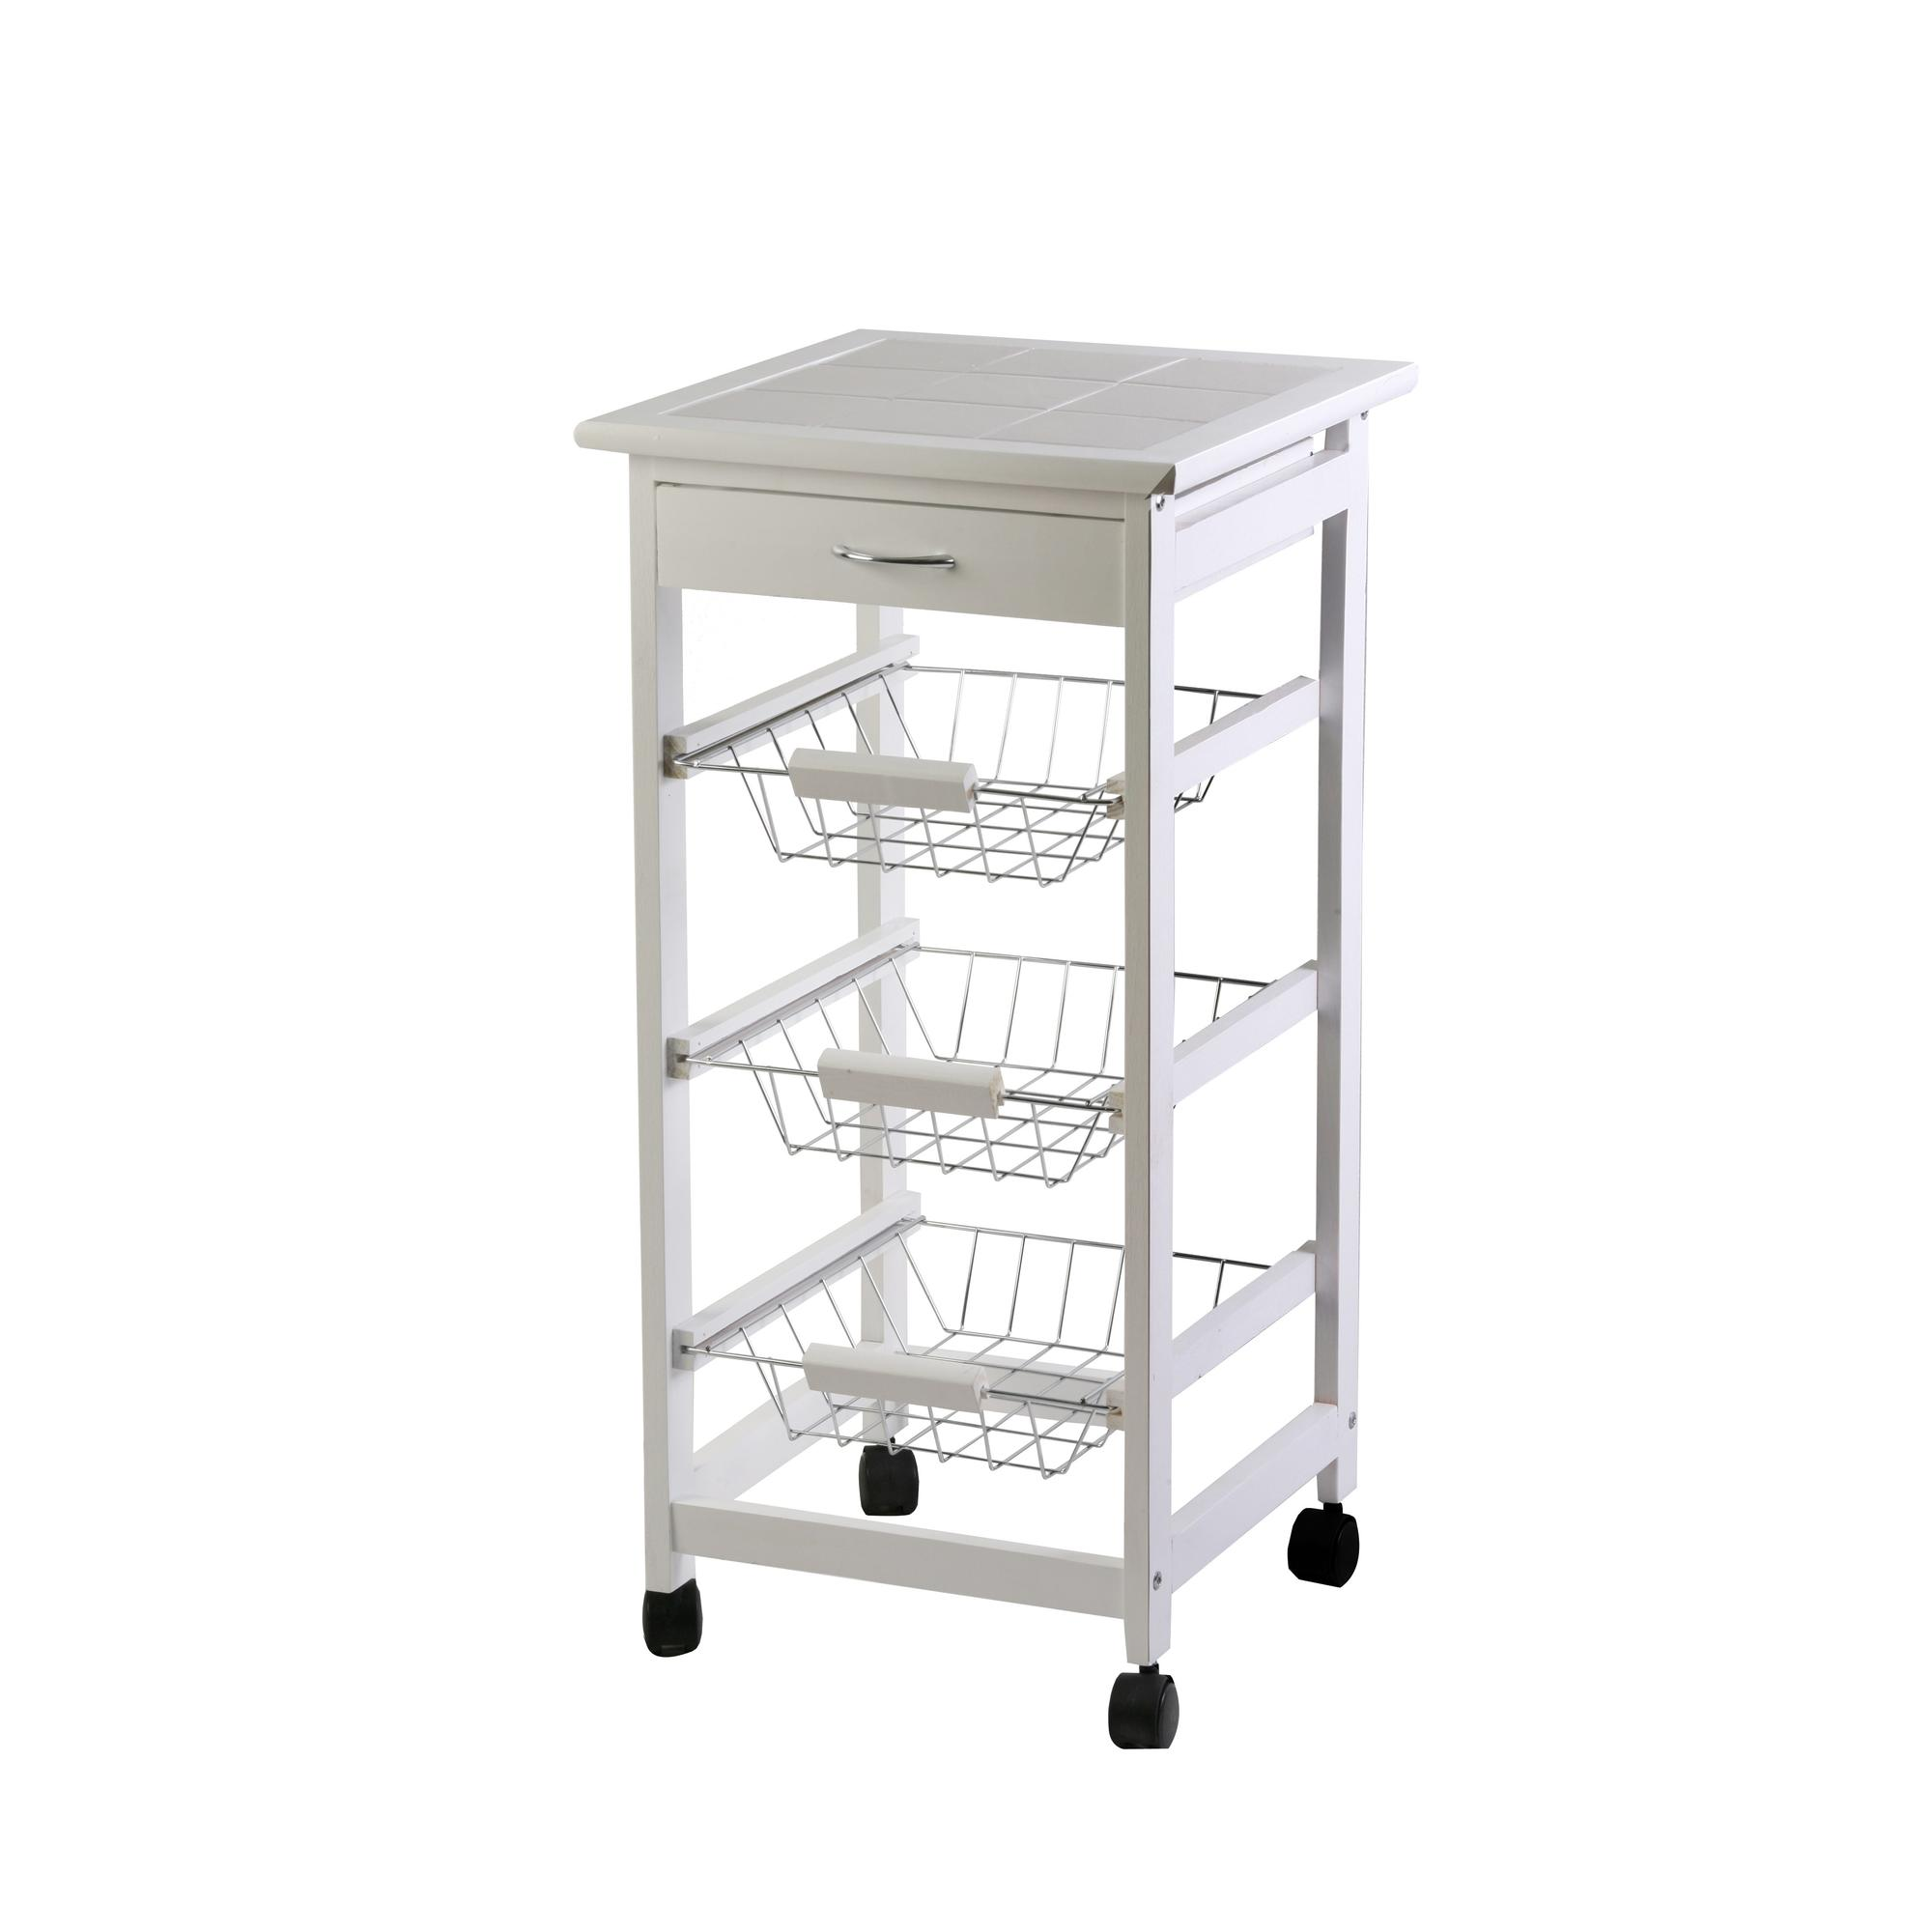 Carrelli Ikea Carrelli Ikea With Carrelli Ikea Perfect